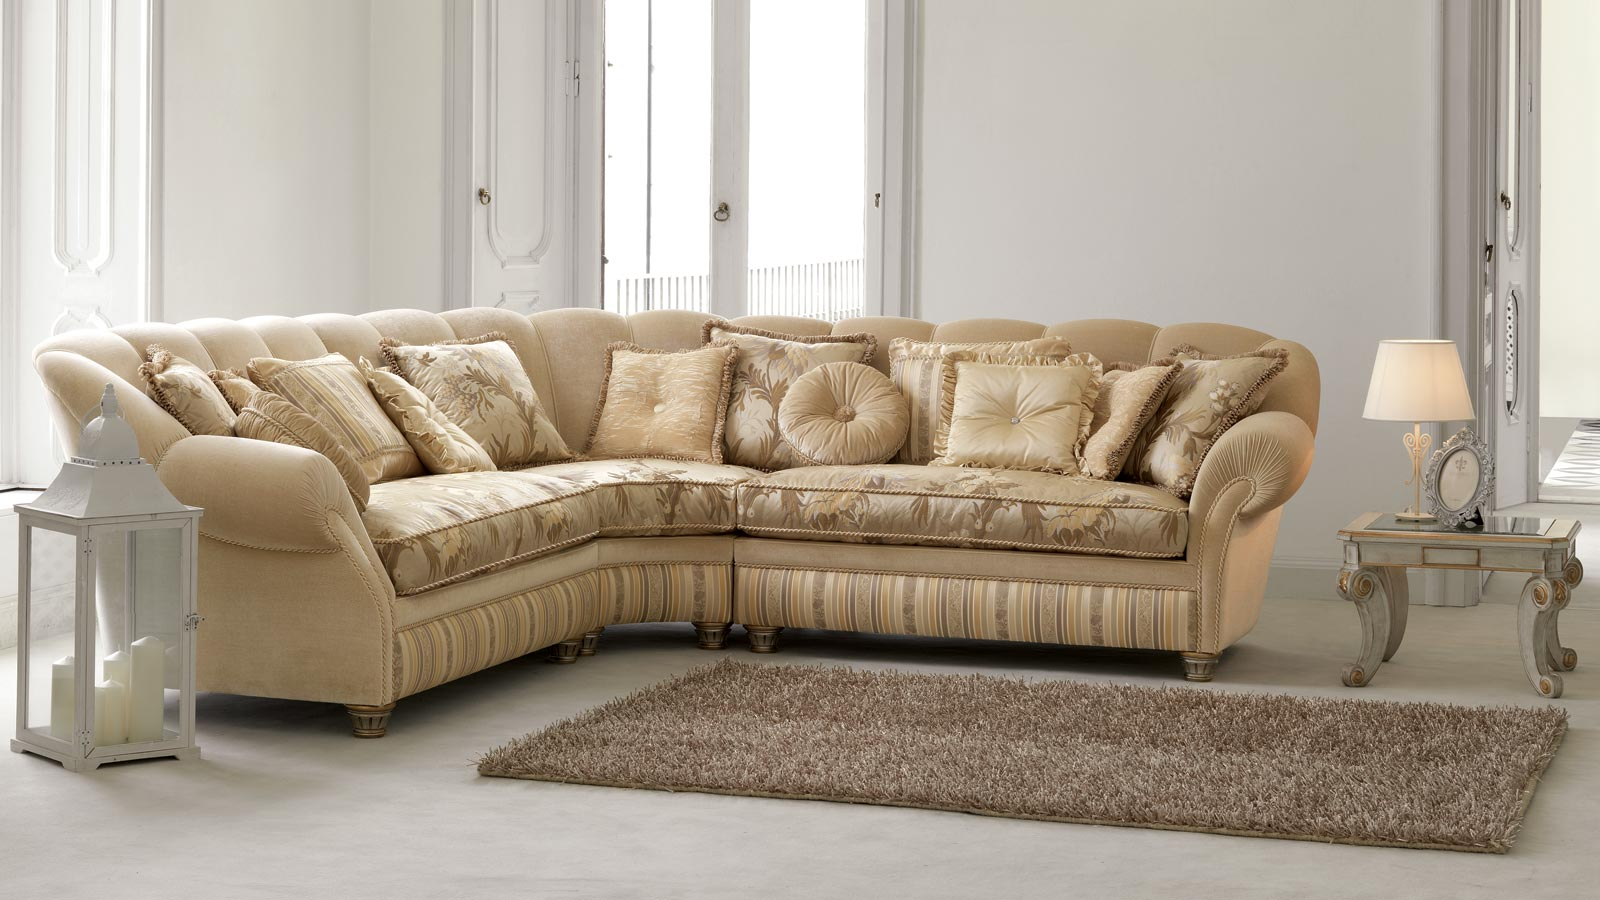 sofa furniture design images sofas with down cushions best luxury and teseo italian corner